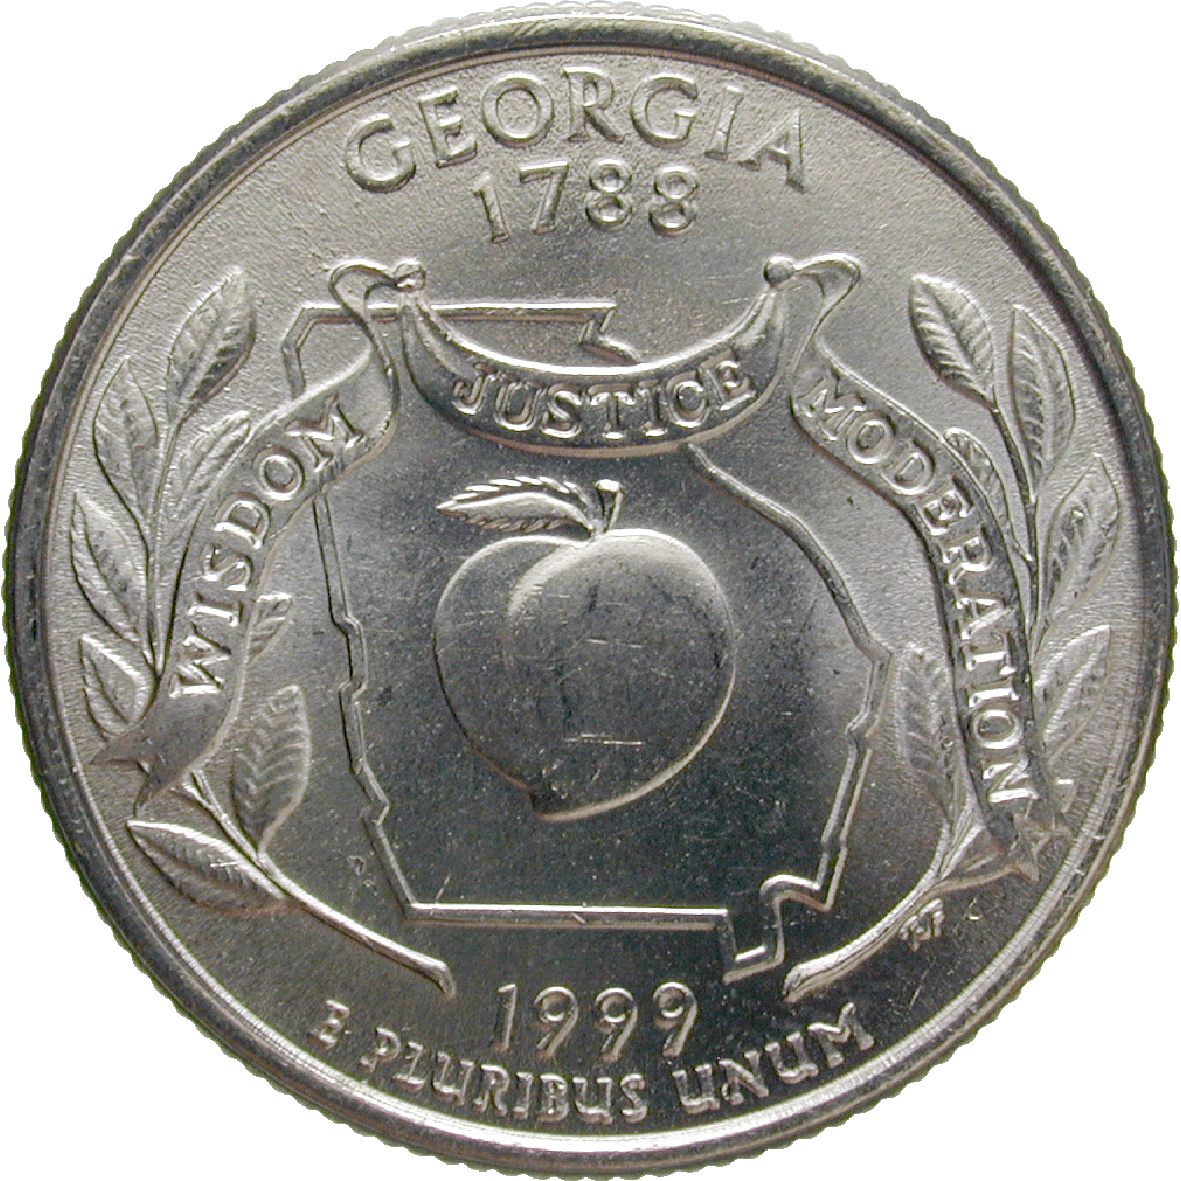 United States of America, Quarter Dollar 1999 (reverse)